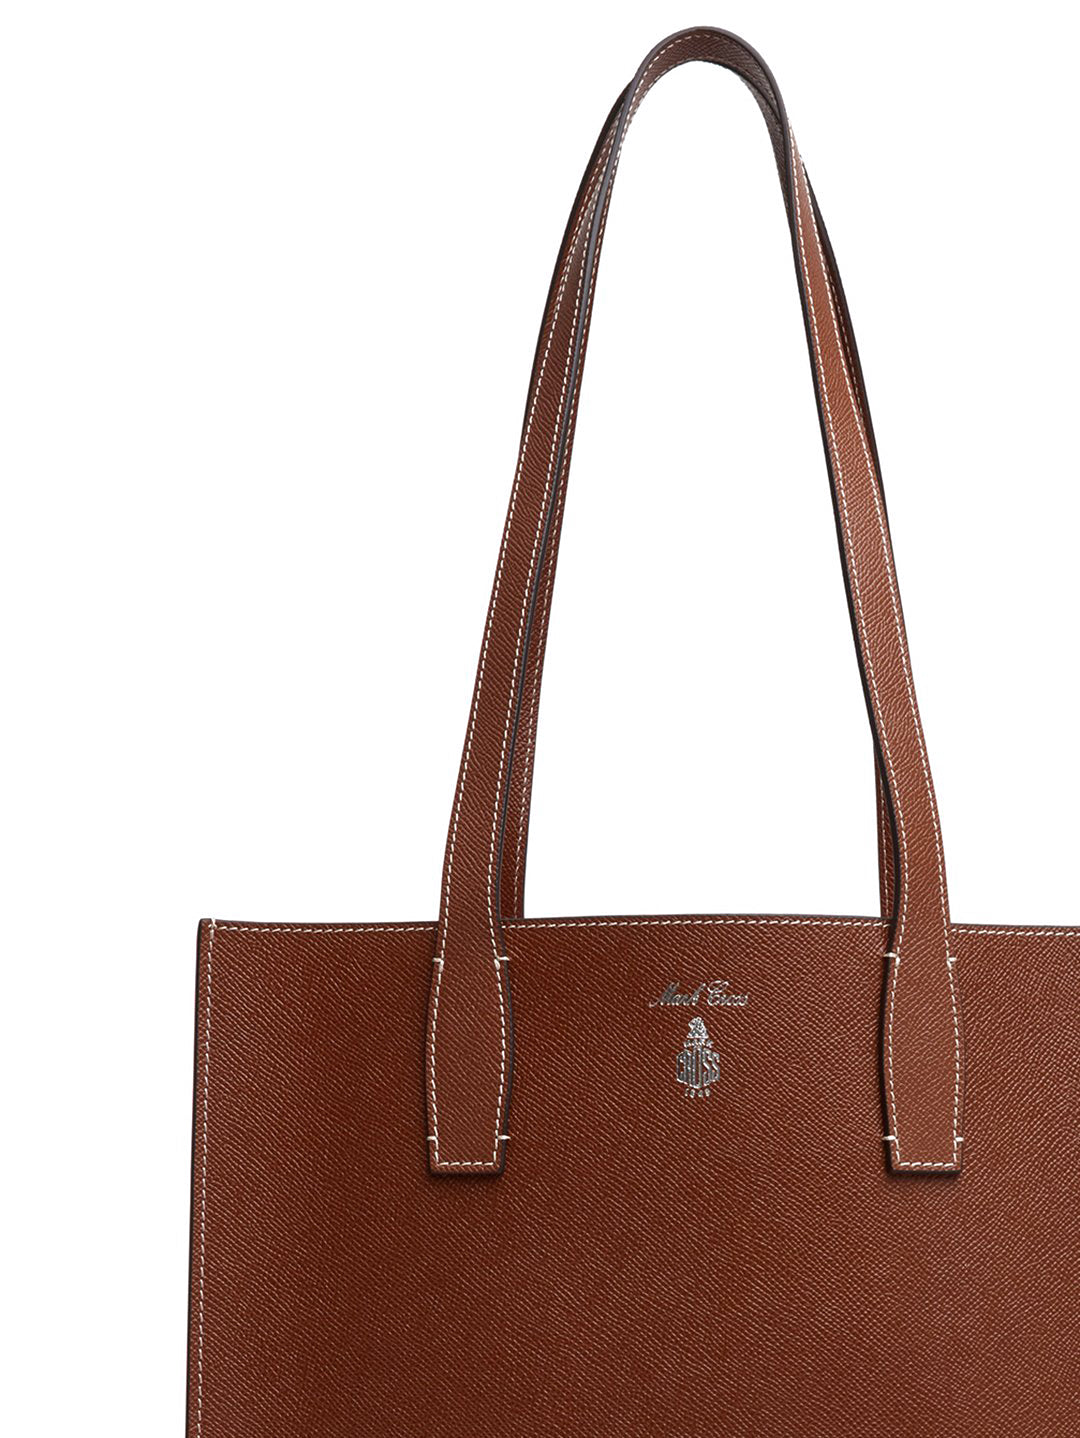 Mark Cross Fitzgerald North South Leather Tote Saffiano Acorn Detail